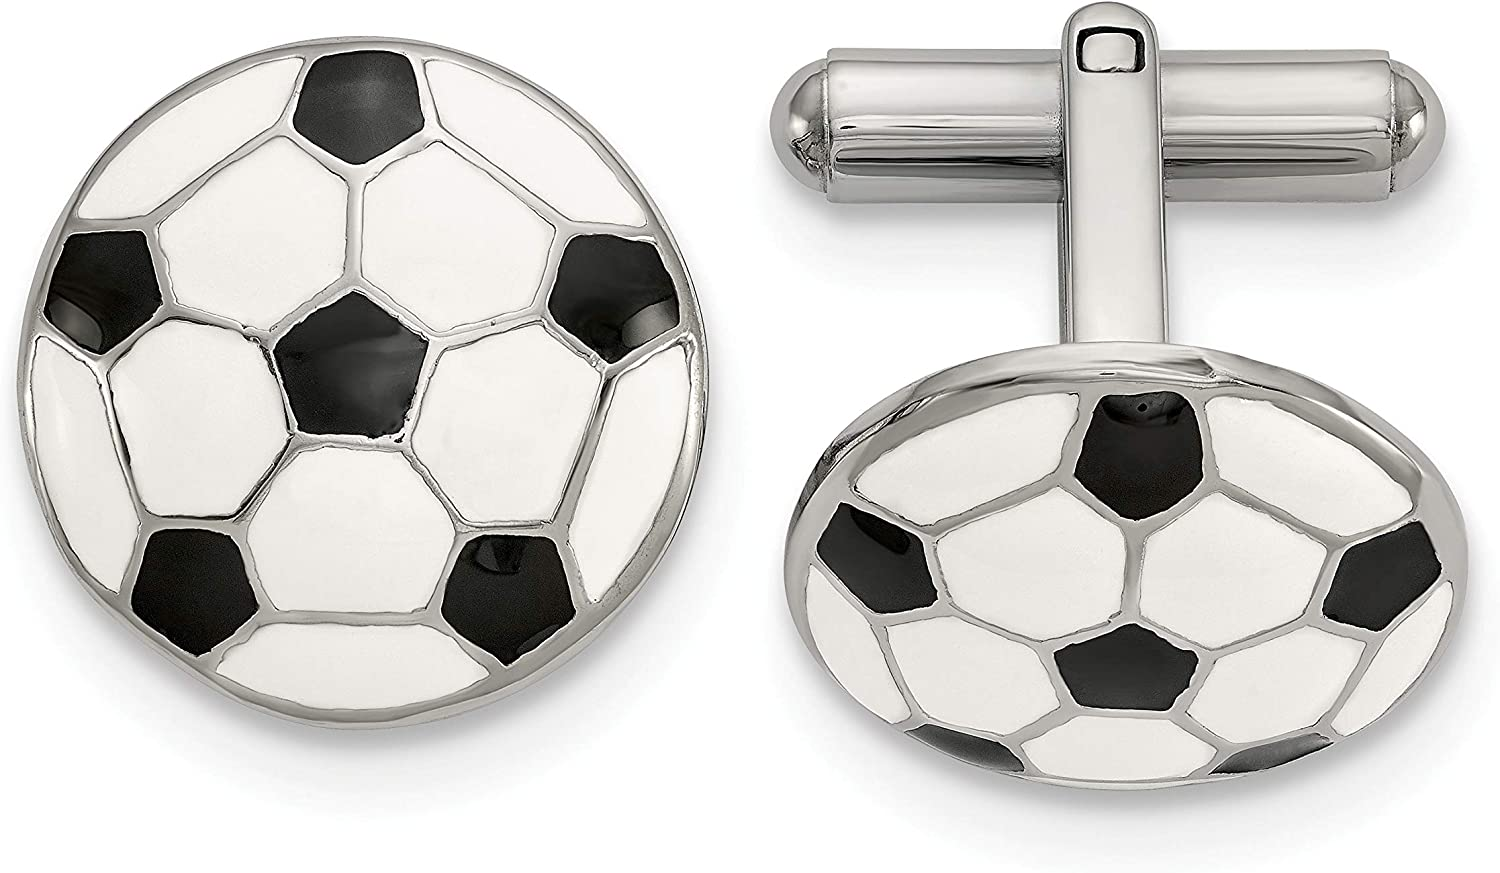 Stainless Steel Polished and Enameled Soccer Ball Cuff Links White Men's